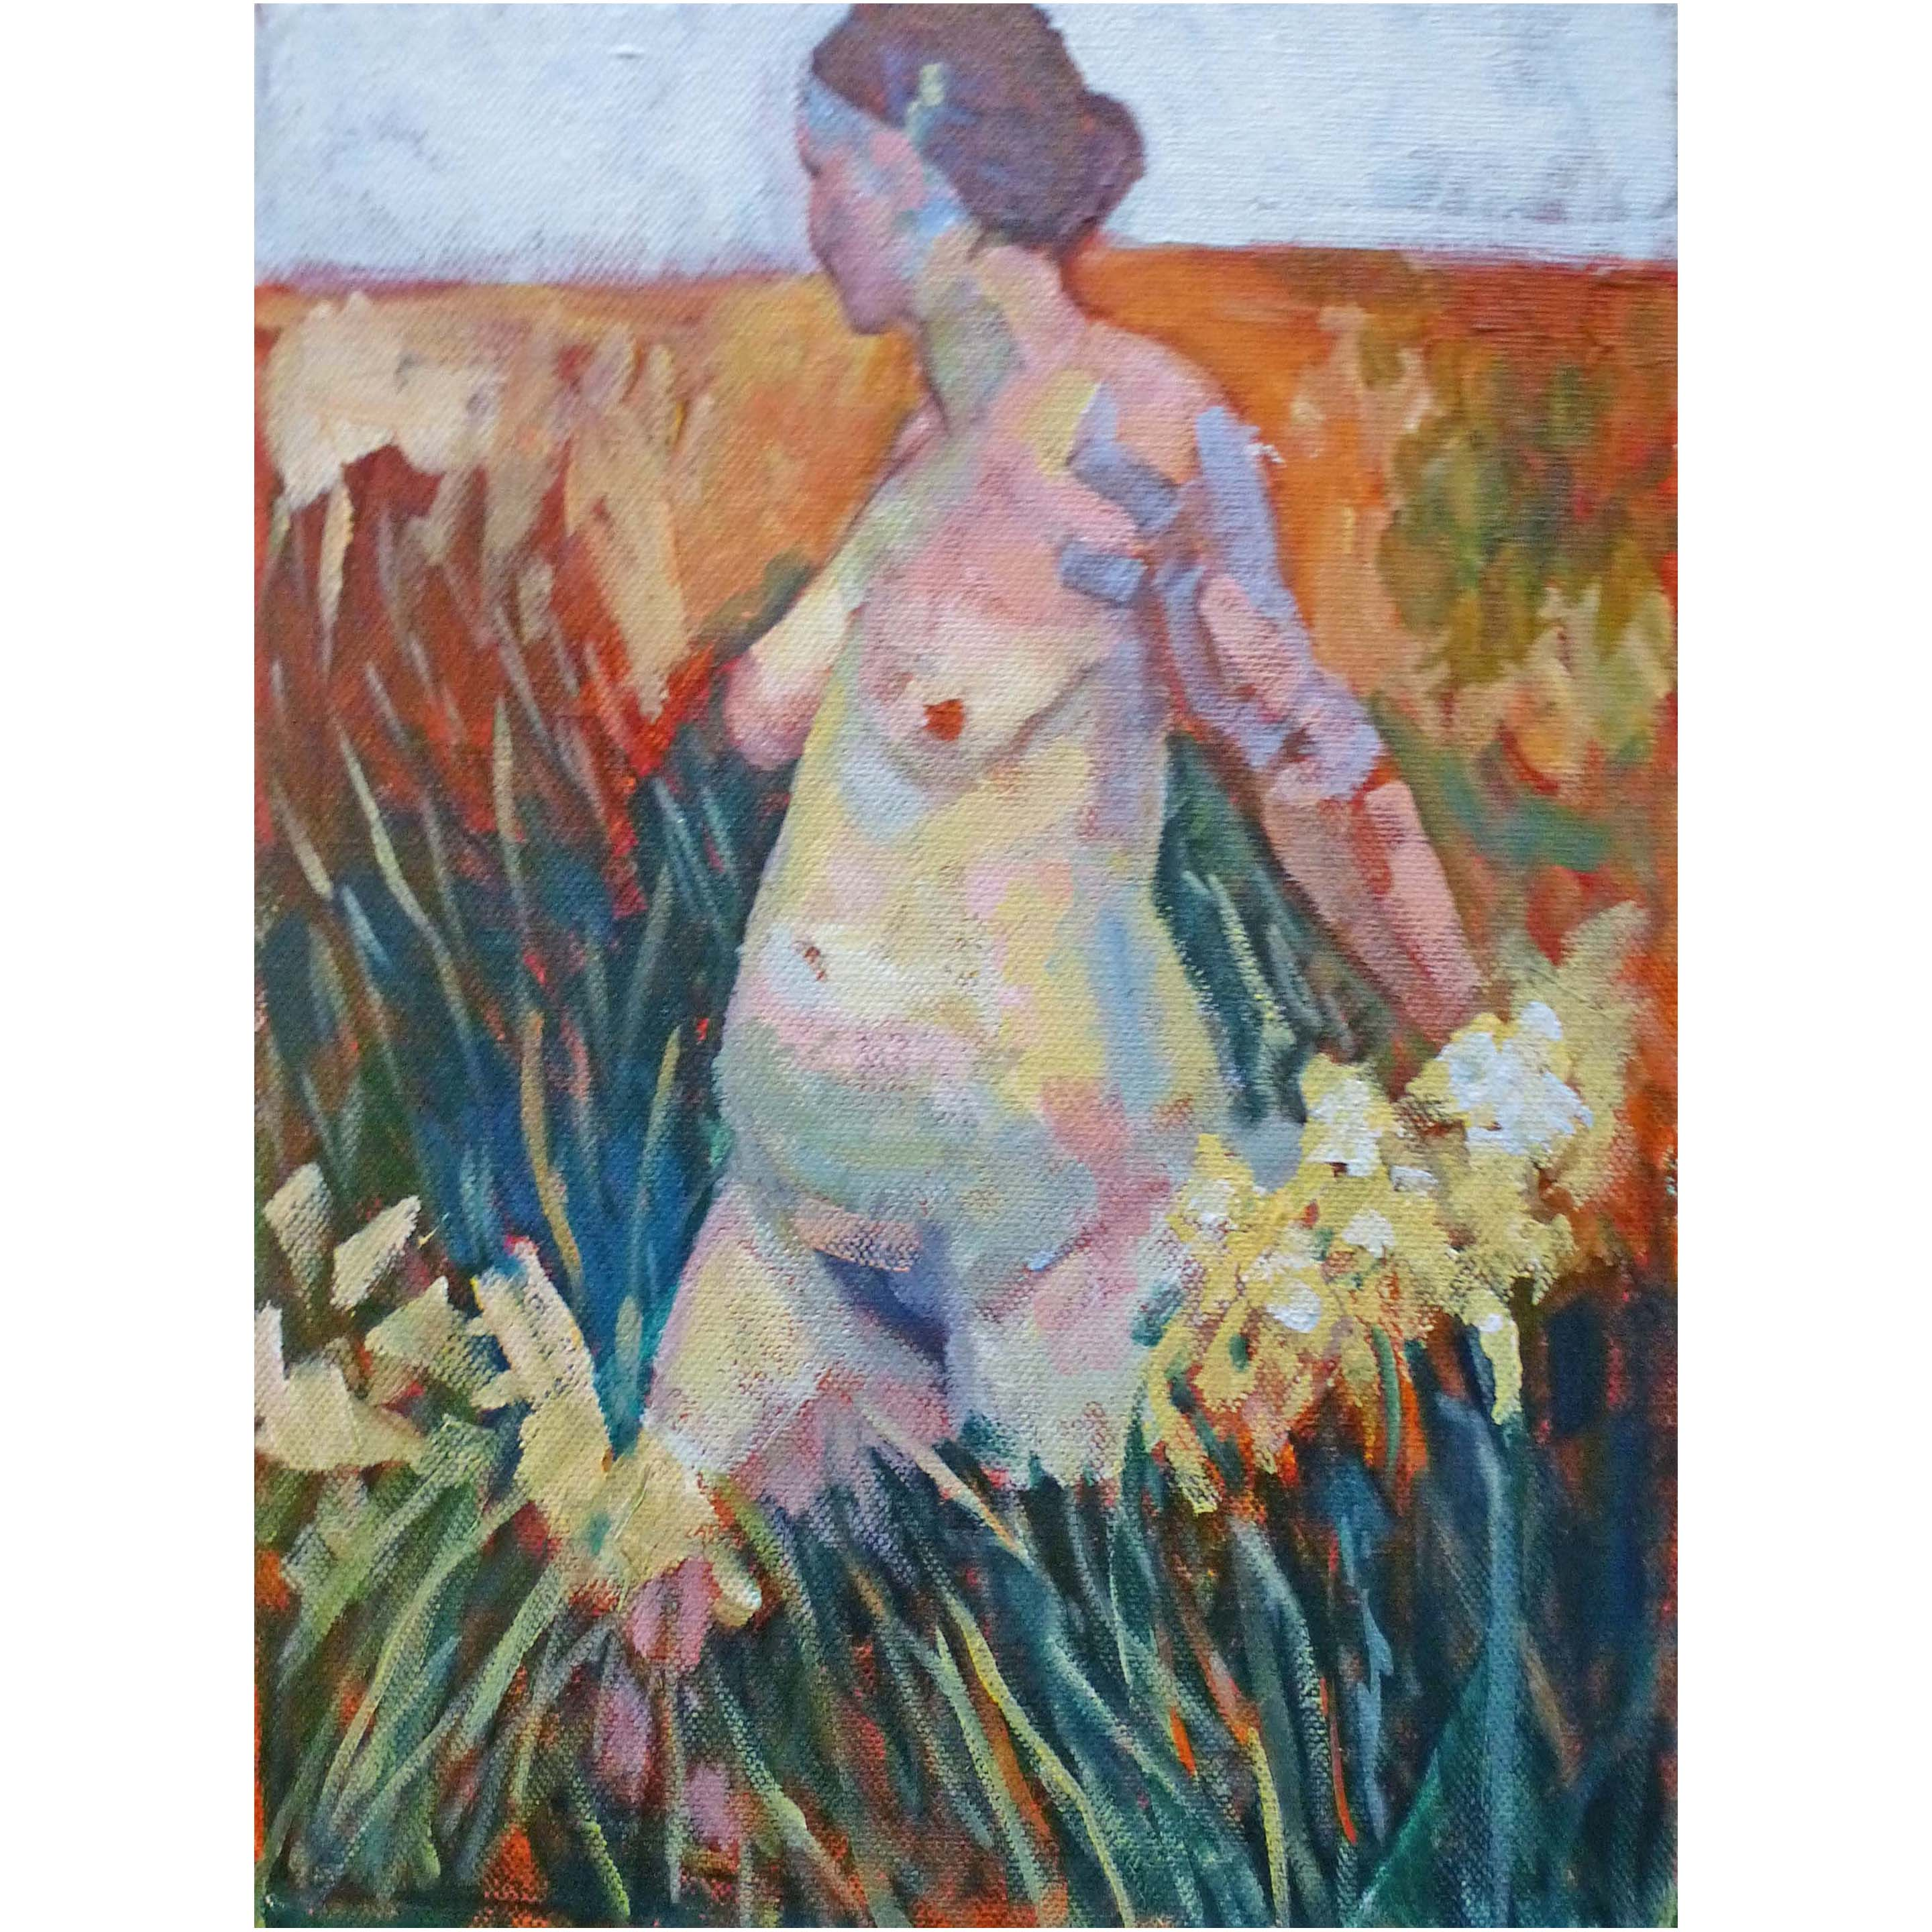 Girl in the field.Sold